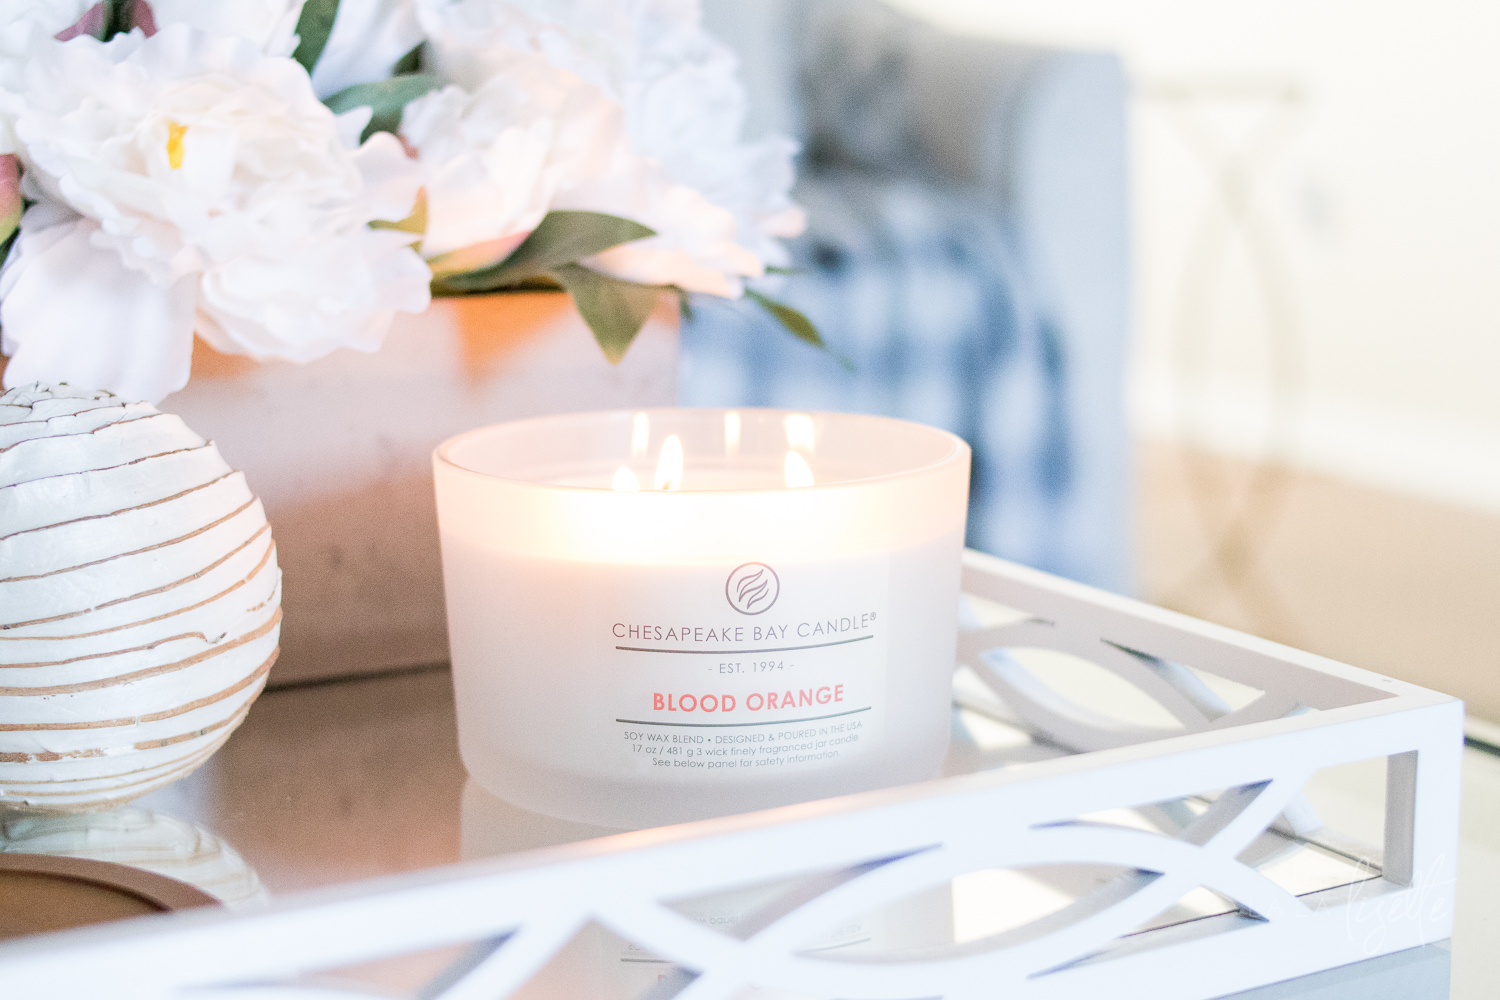 Chesapeake Bay Candle - The Heritage Collection Blood Orange lit | La La Lisette